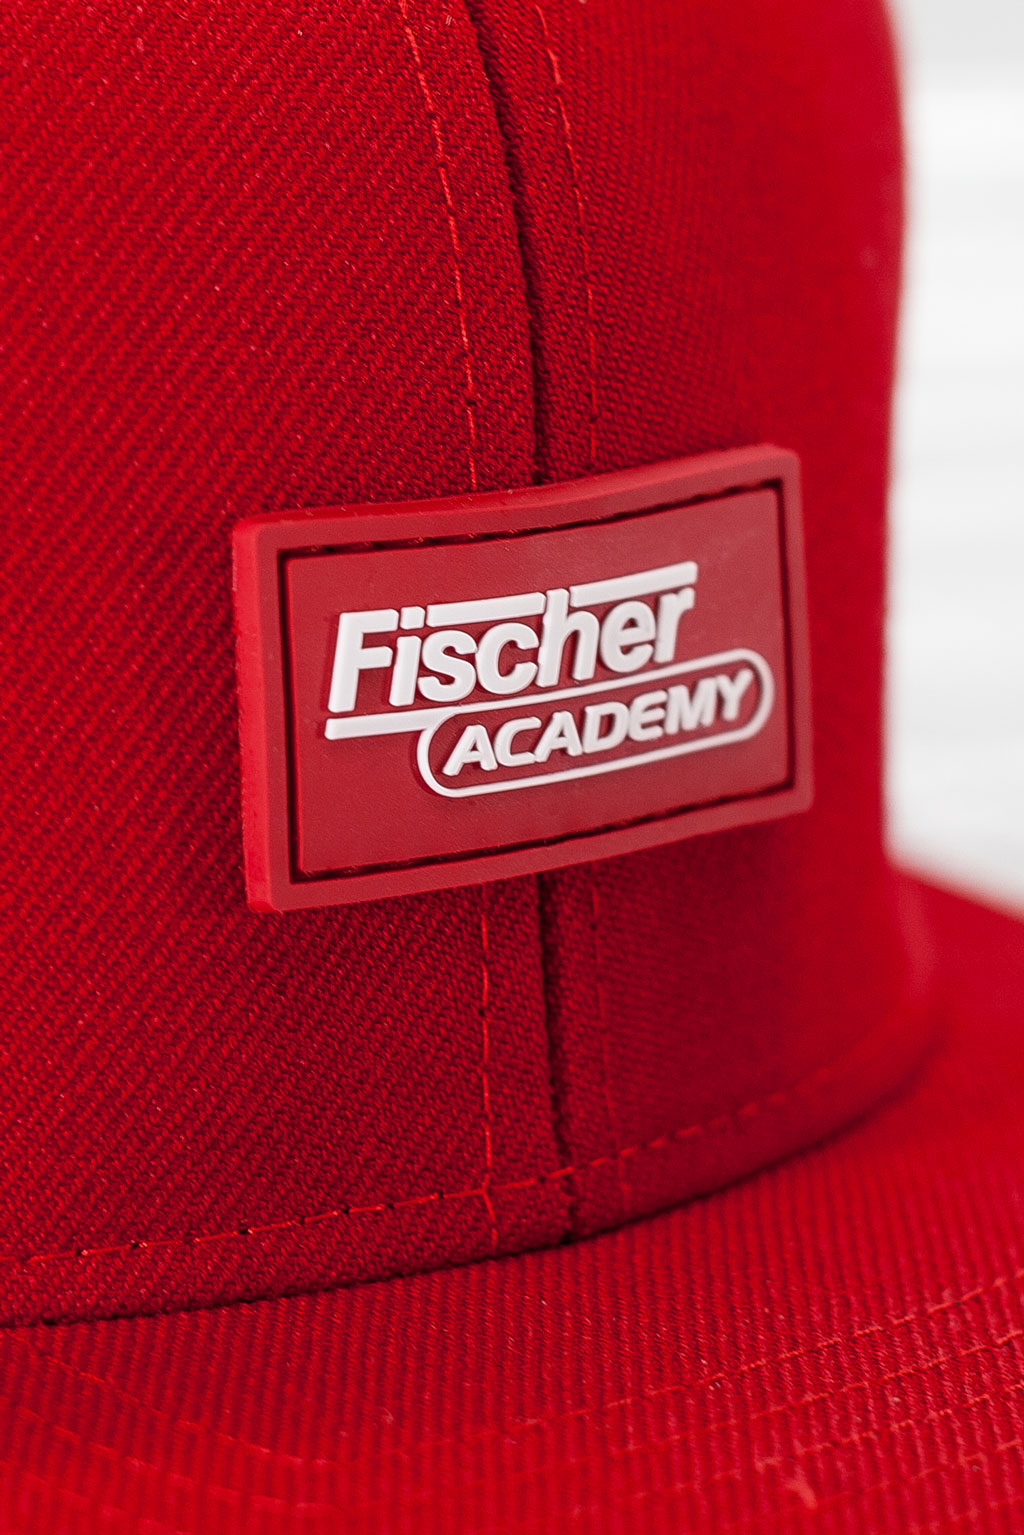 folien-fabrik / Fischer-Academy / Corporate Wear